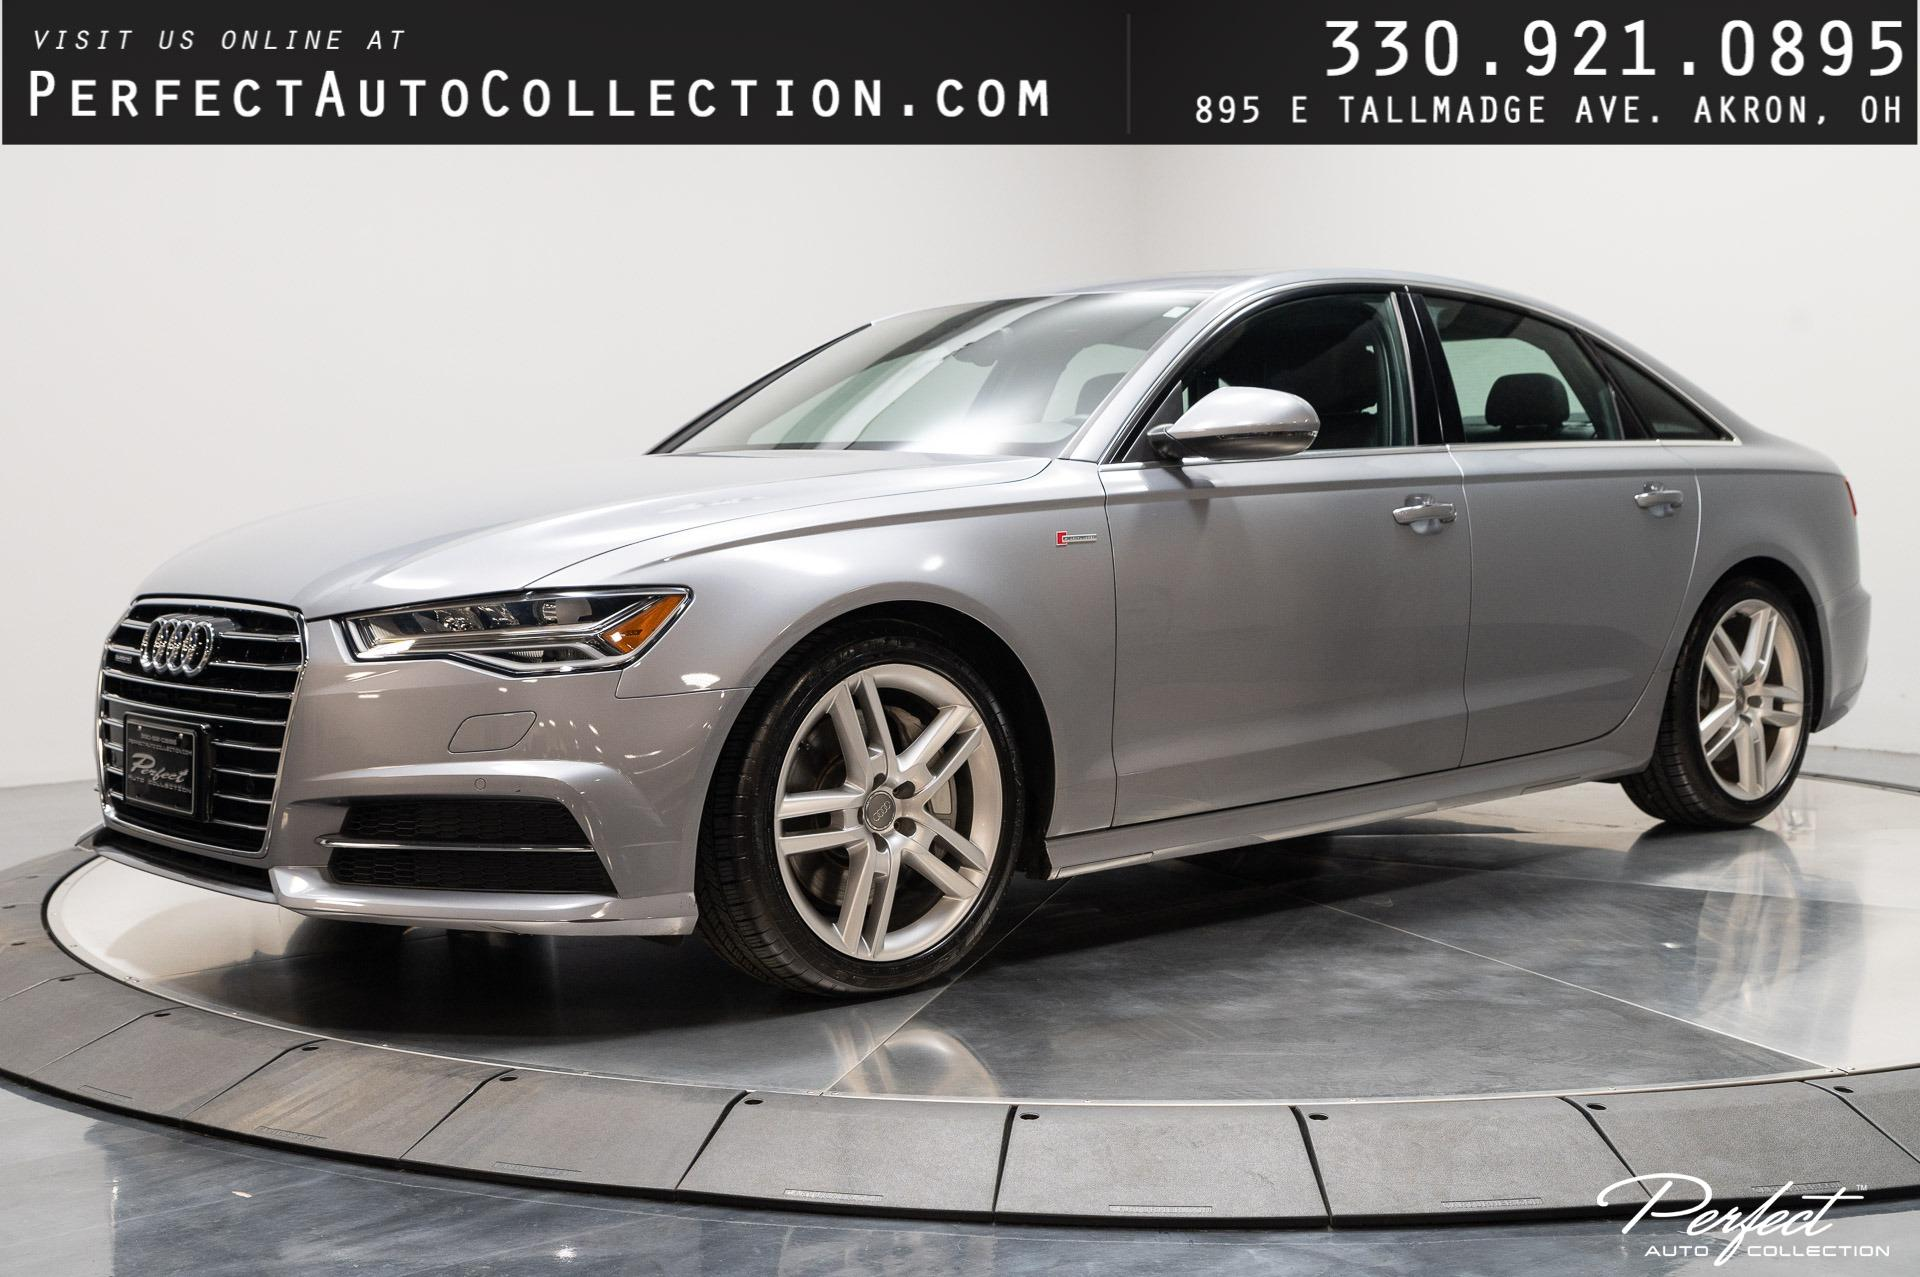 Used 2016 Audi A6 3.0T quattro Premium Plus for sale Sold at Perfect Auto Collection in Akron OH 44310 1